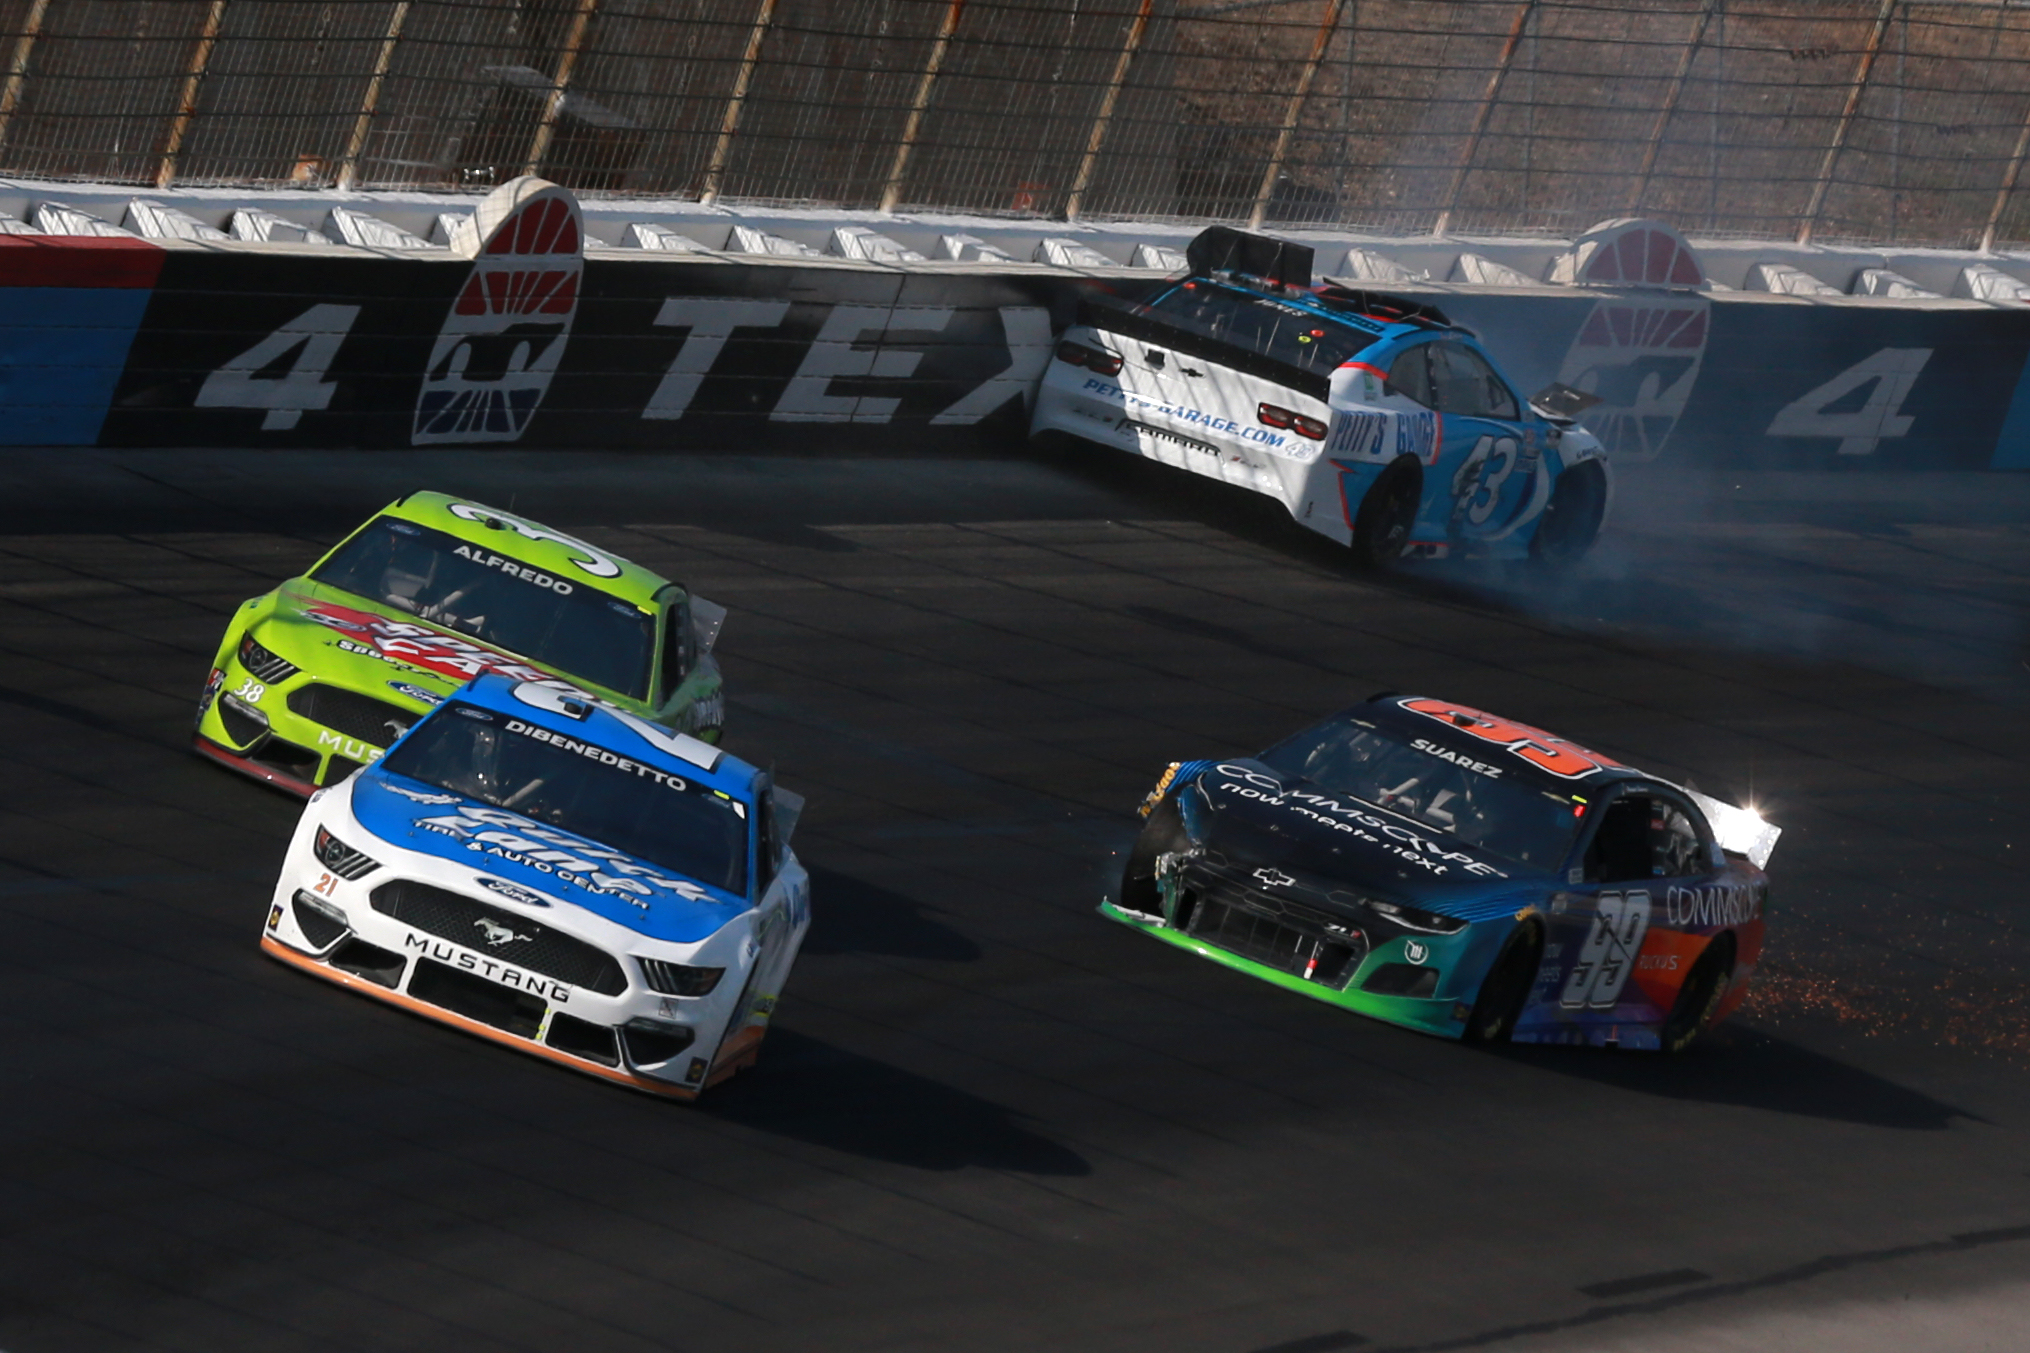 FORT WORTH, TEXAS - JUNE 13: Erik Jones, driver of the #43 Petty's Garage Chevrolet, spins into the wall as Matt DiBenedetto, driver of the #21 Quick Lane Tire & Auto Center Ford, Anthony Alfredo, driver of the #38 Speedy Cash Ford, and Daniel Suarez, driver of the #99 CommScope Chevrolet, drive past during the NASCAR All-Star Open at Texas Motor Speedway on June 13, 2021 in Fort Worth, Texas. (Photo by Sean Gardner/Getty Images)   Getty Images